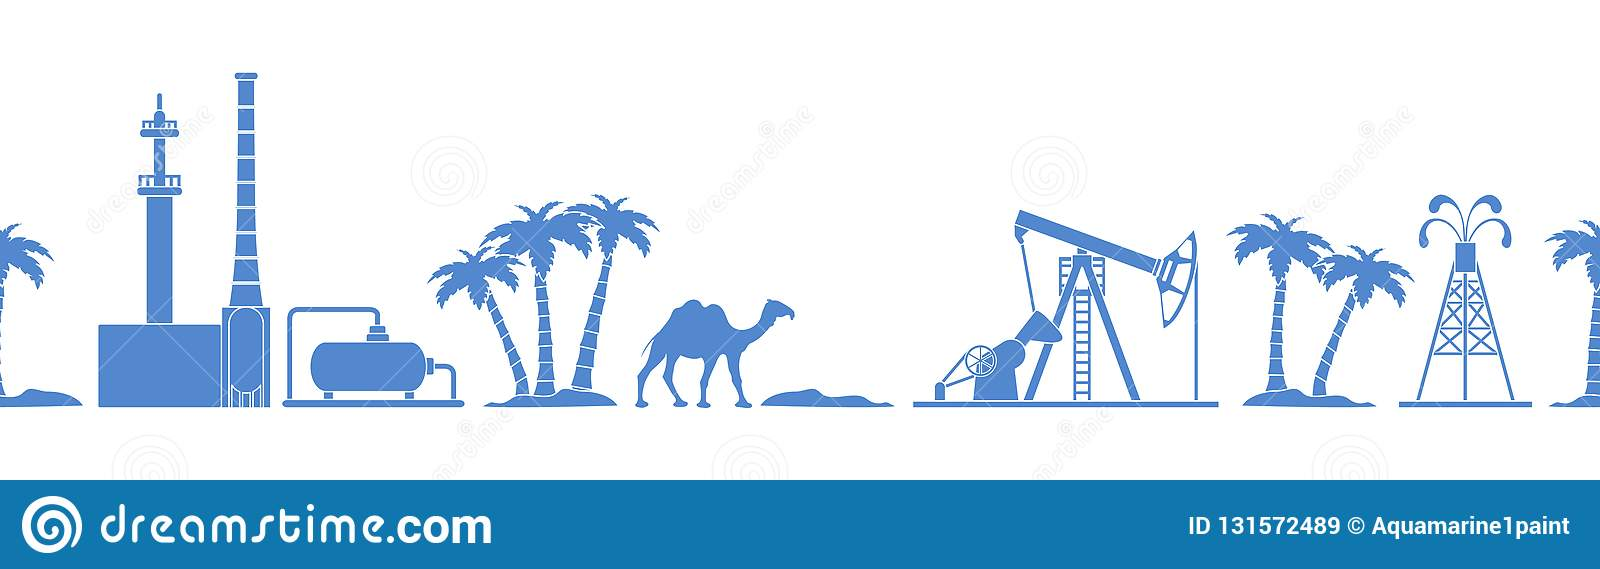 Vector seamless pattern with equipment for oil production, refinery plant, camel, palm trees. Heading or footer banner. Design for